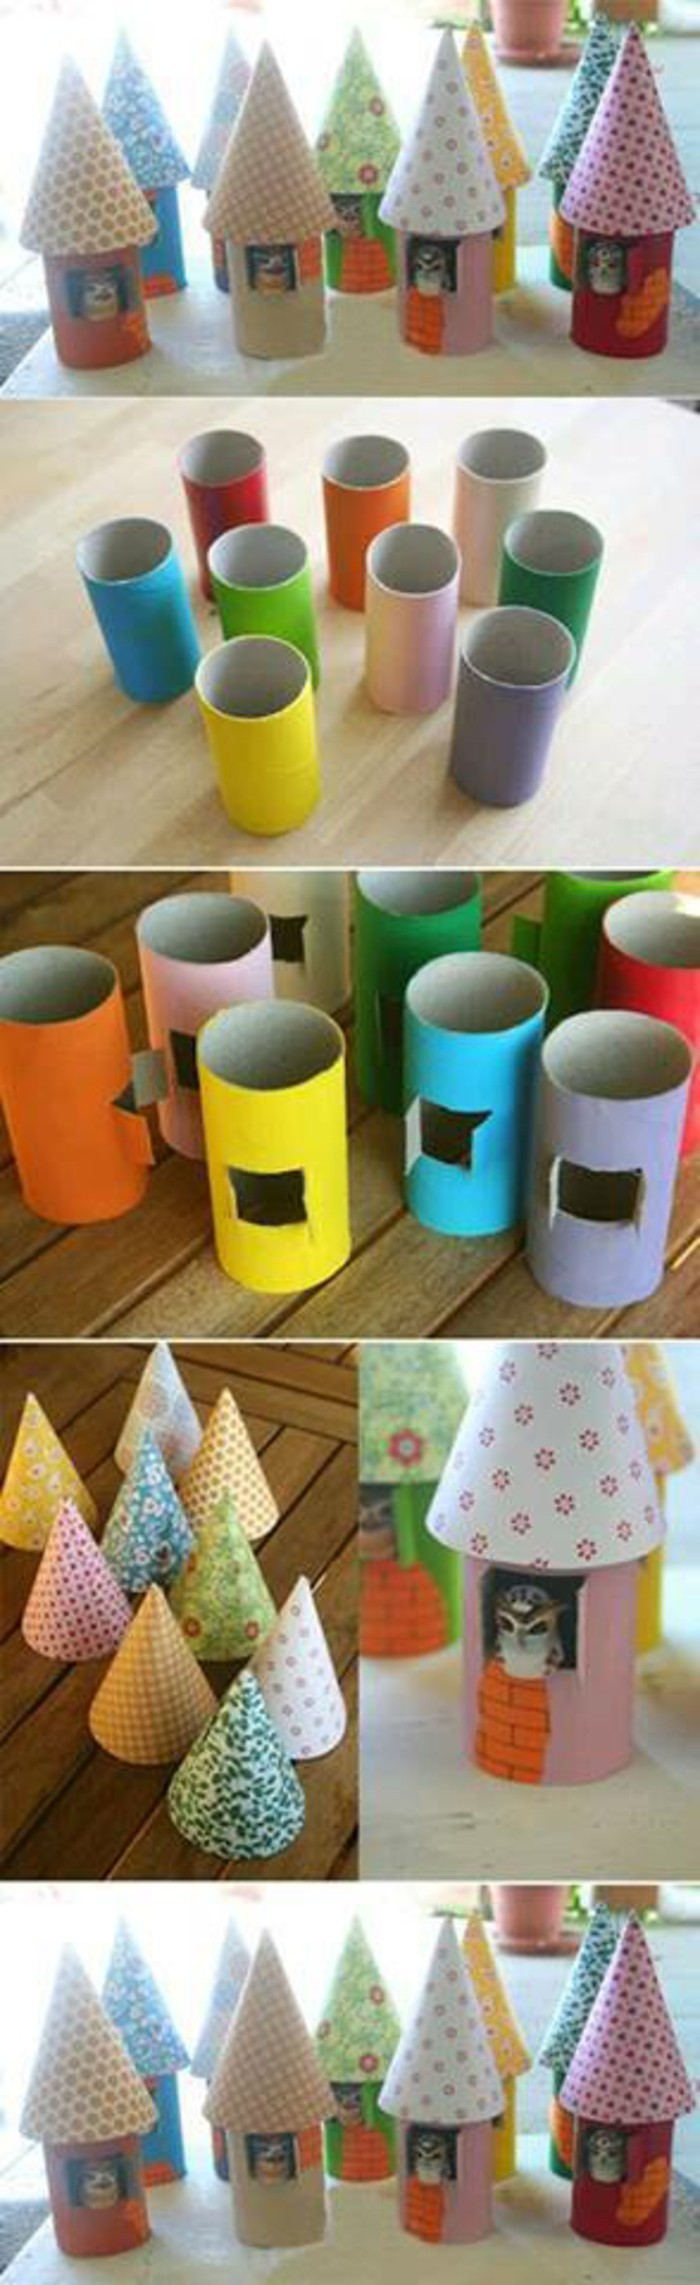 diy ideas decoration ideas tinker with children village